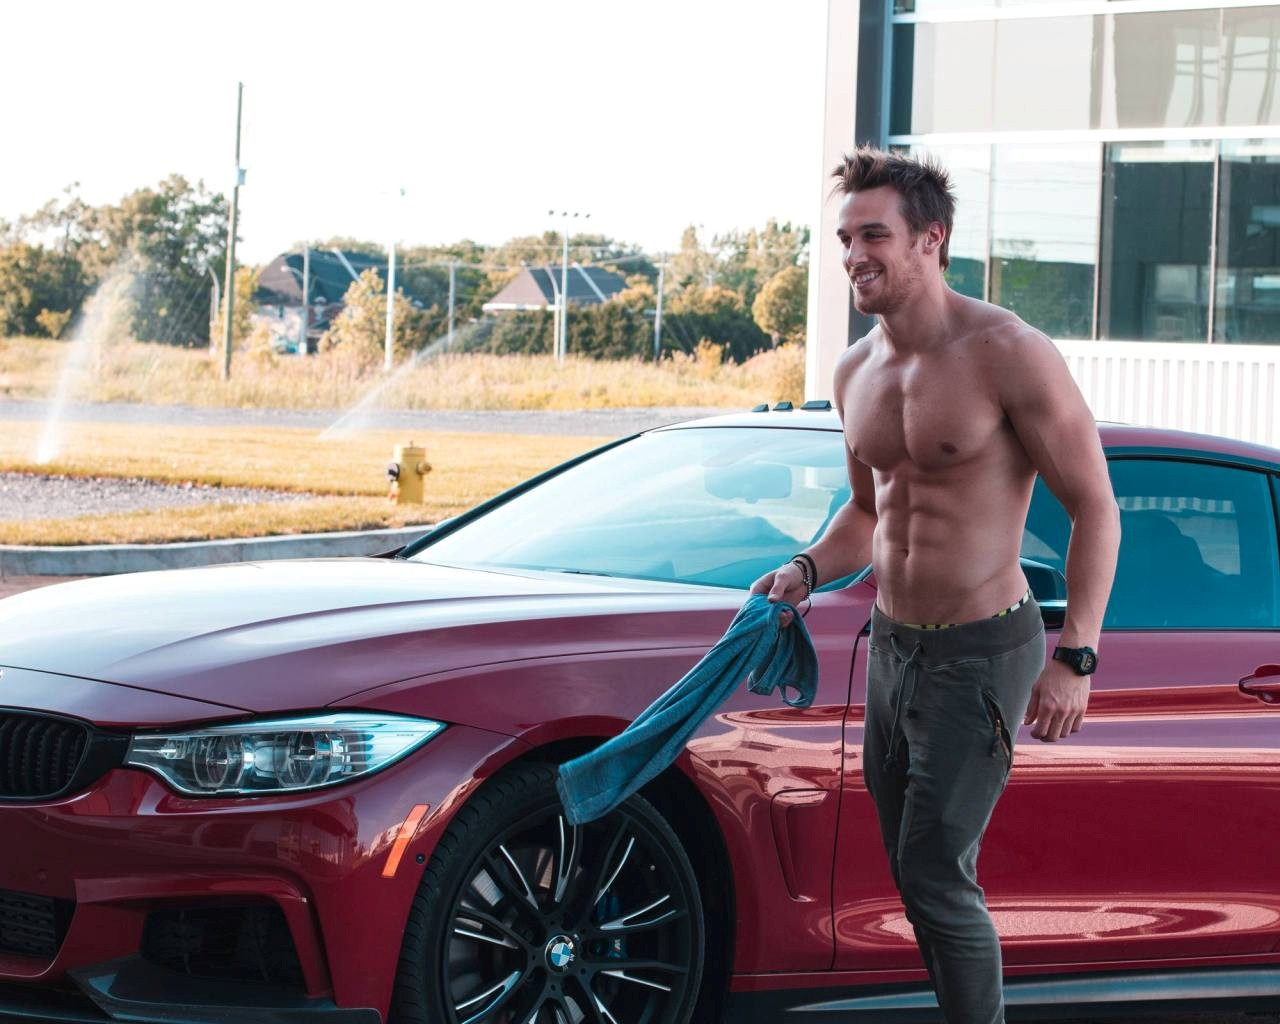 summer-carwash-brunette-marc-fitt-shirtless-abs